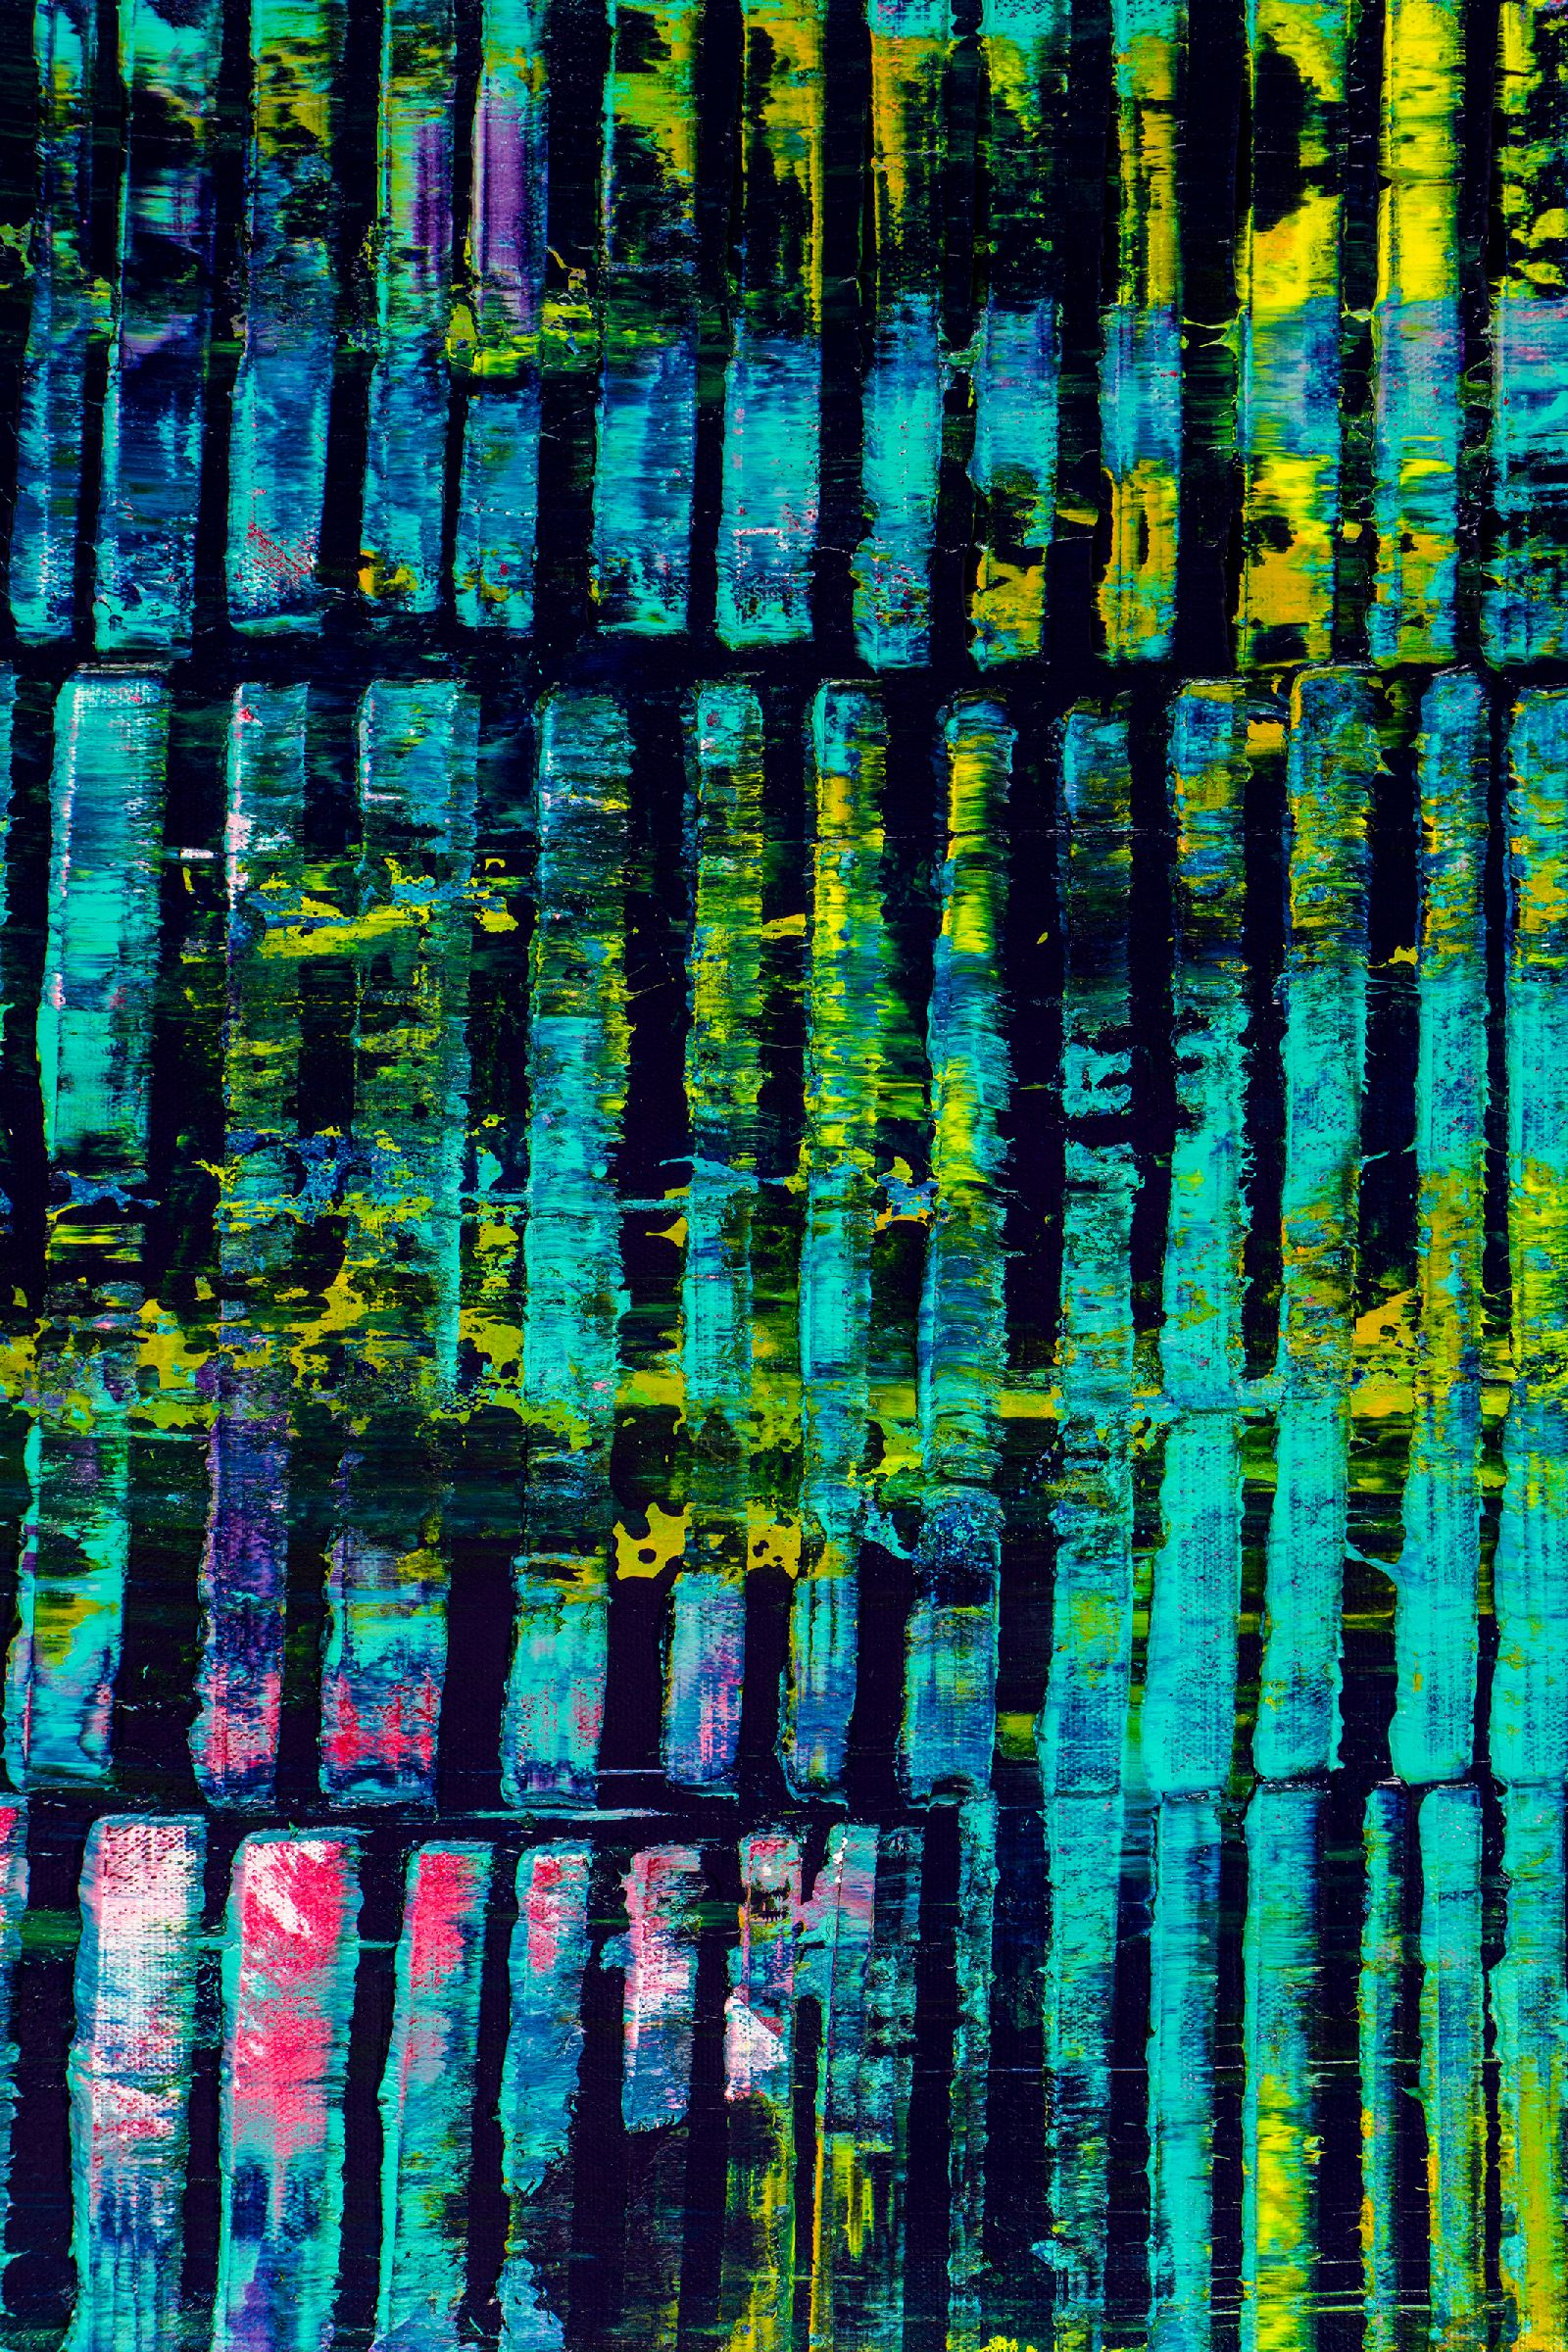 Detail - Modern spectra and lights (With Teal) (2020) by Nestor Toro